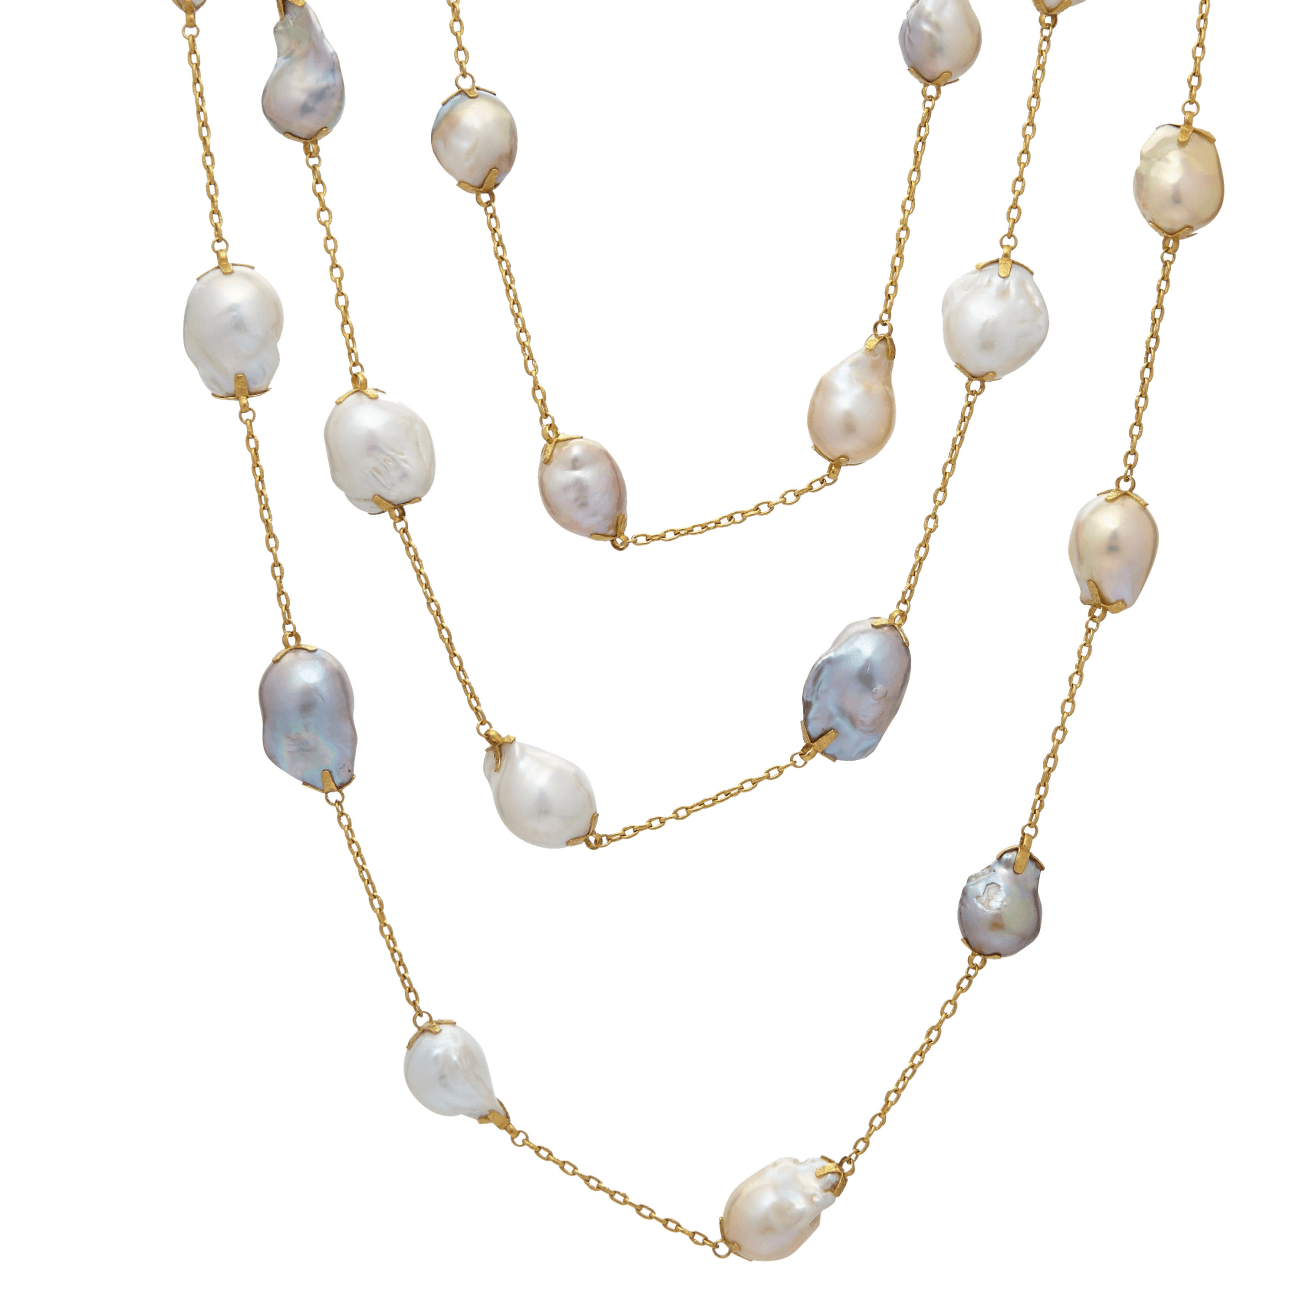 Gurhan Jewelry - Oyster hue station necklace 50 length | Manfredi Jewels